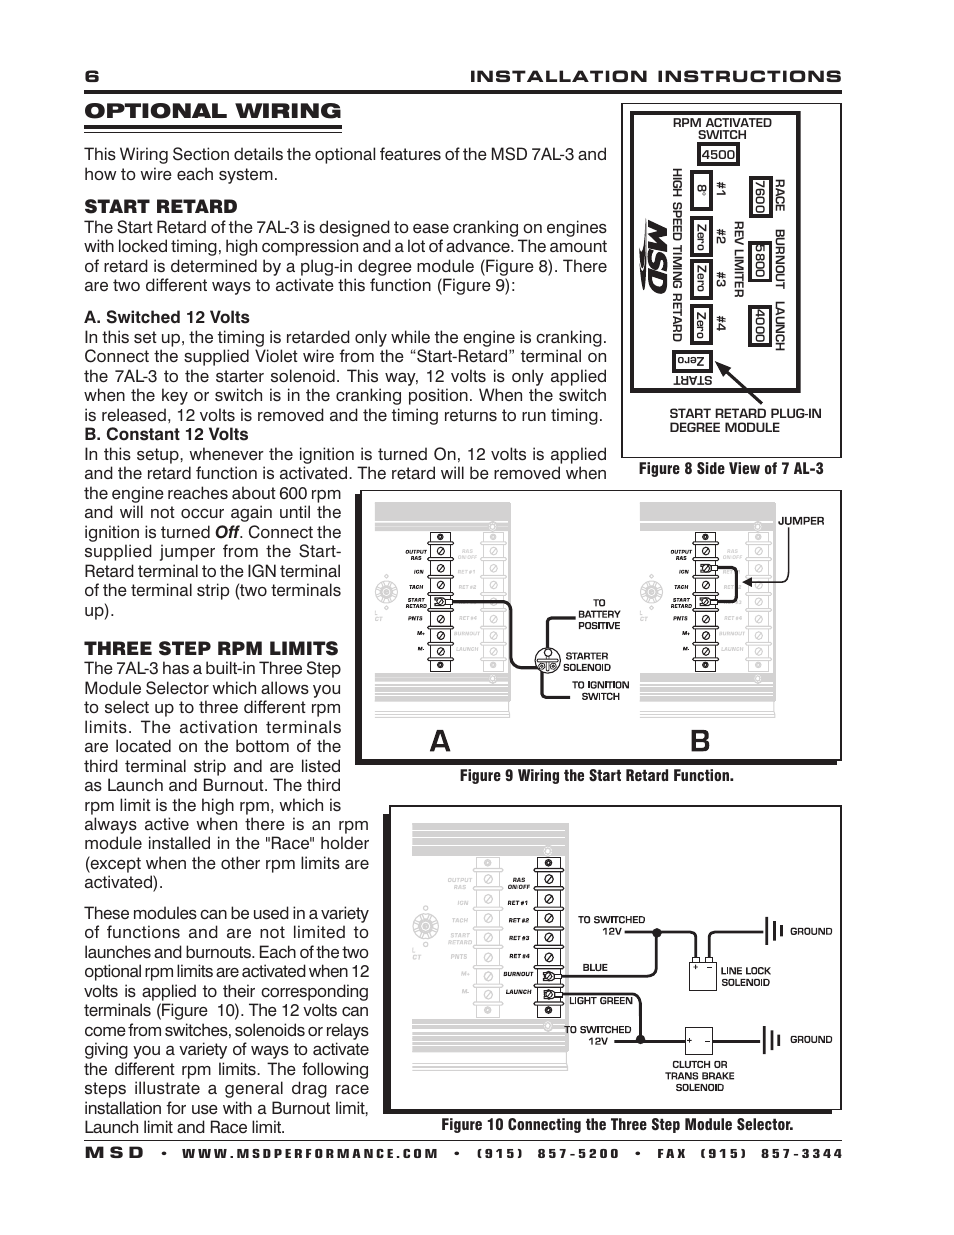 msd 7al 3 wiring diagram to grid msd discover your wiring 7al3 wiring diagram 7al3 wiring diagrams for car or truck